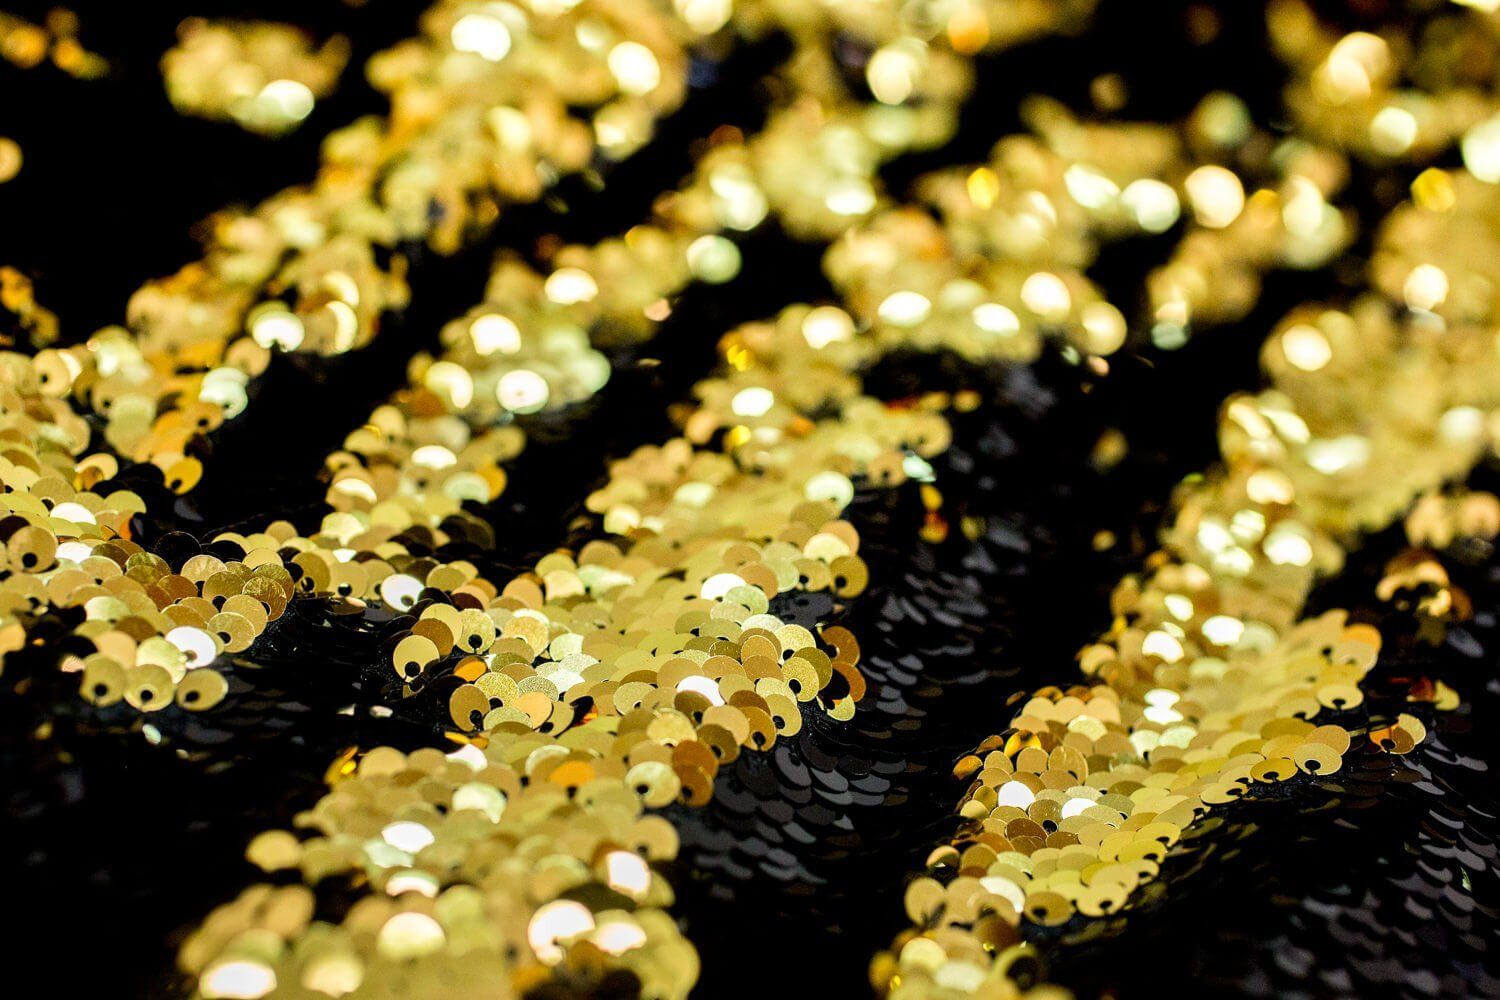 mermaid-reversible-5mm-sequin-fabric-flip-two-tone-stretch-material-130cm-wide-black-gold-sequins-5a417e5b1.jpg